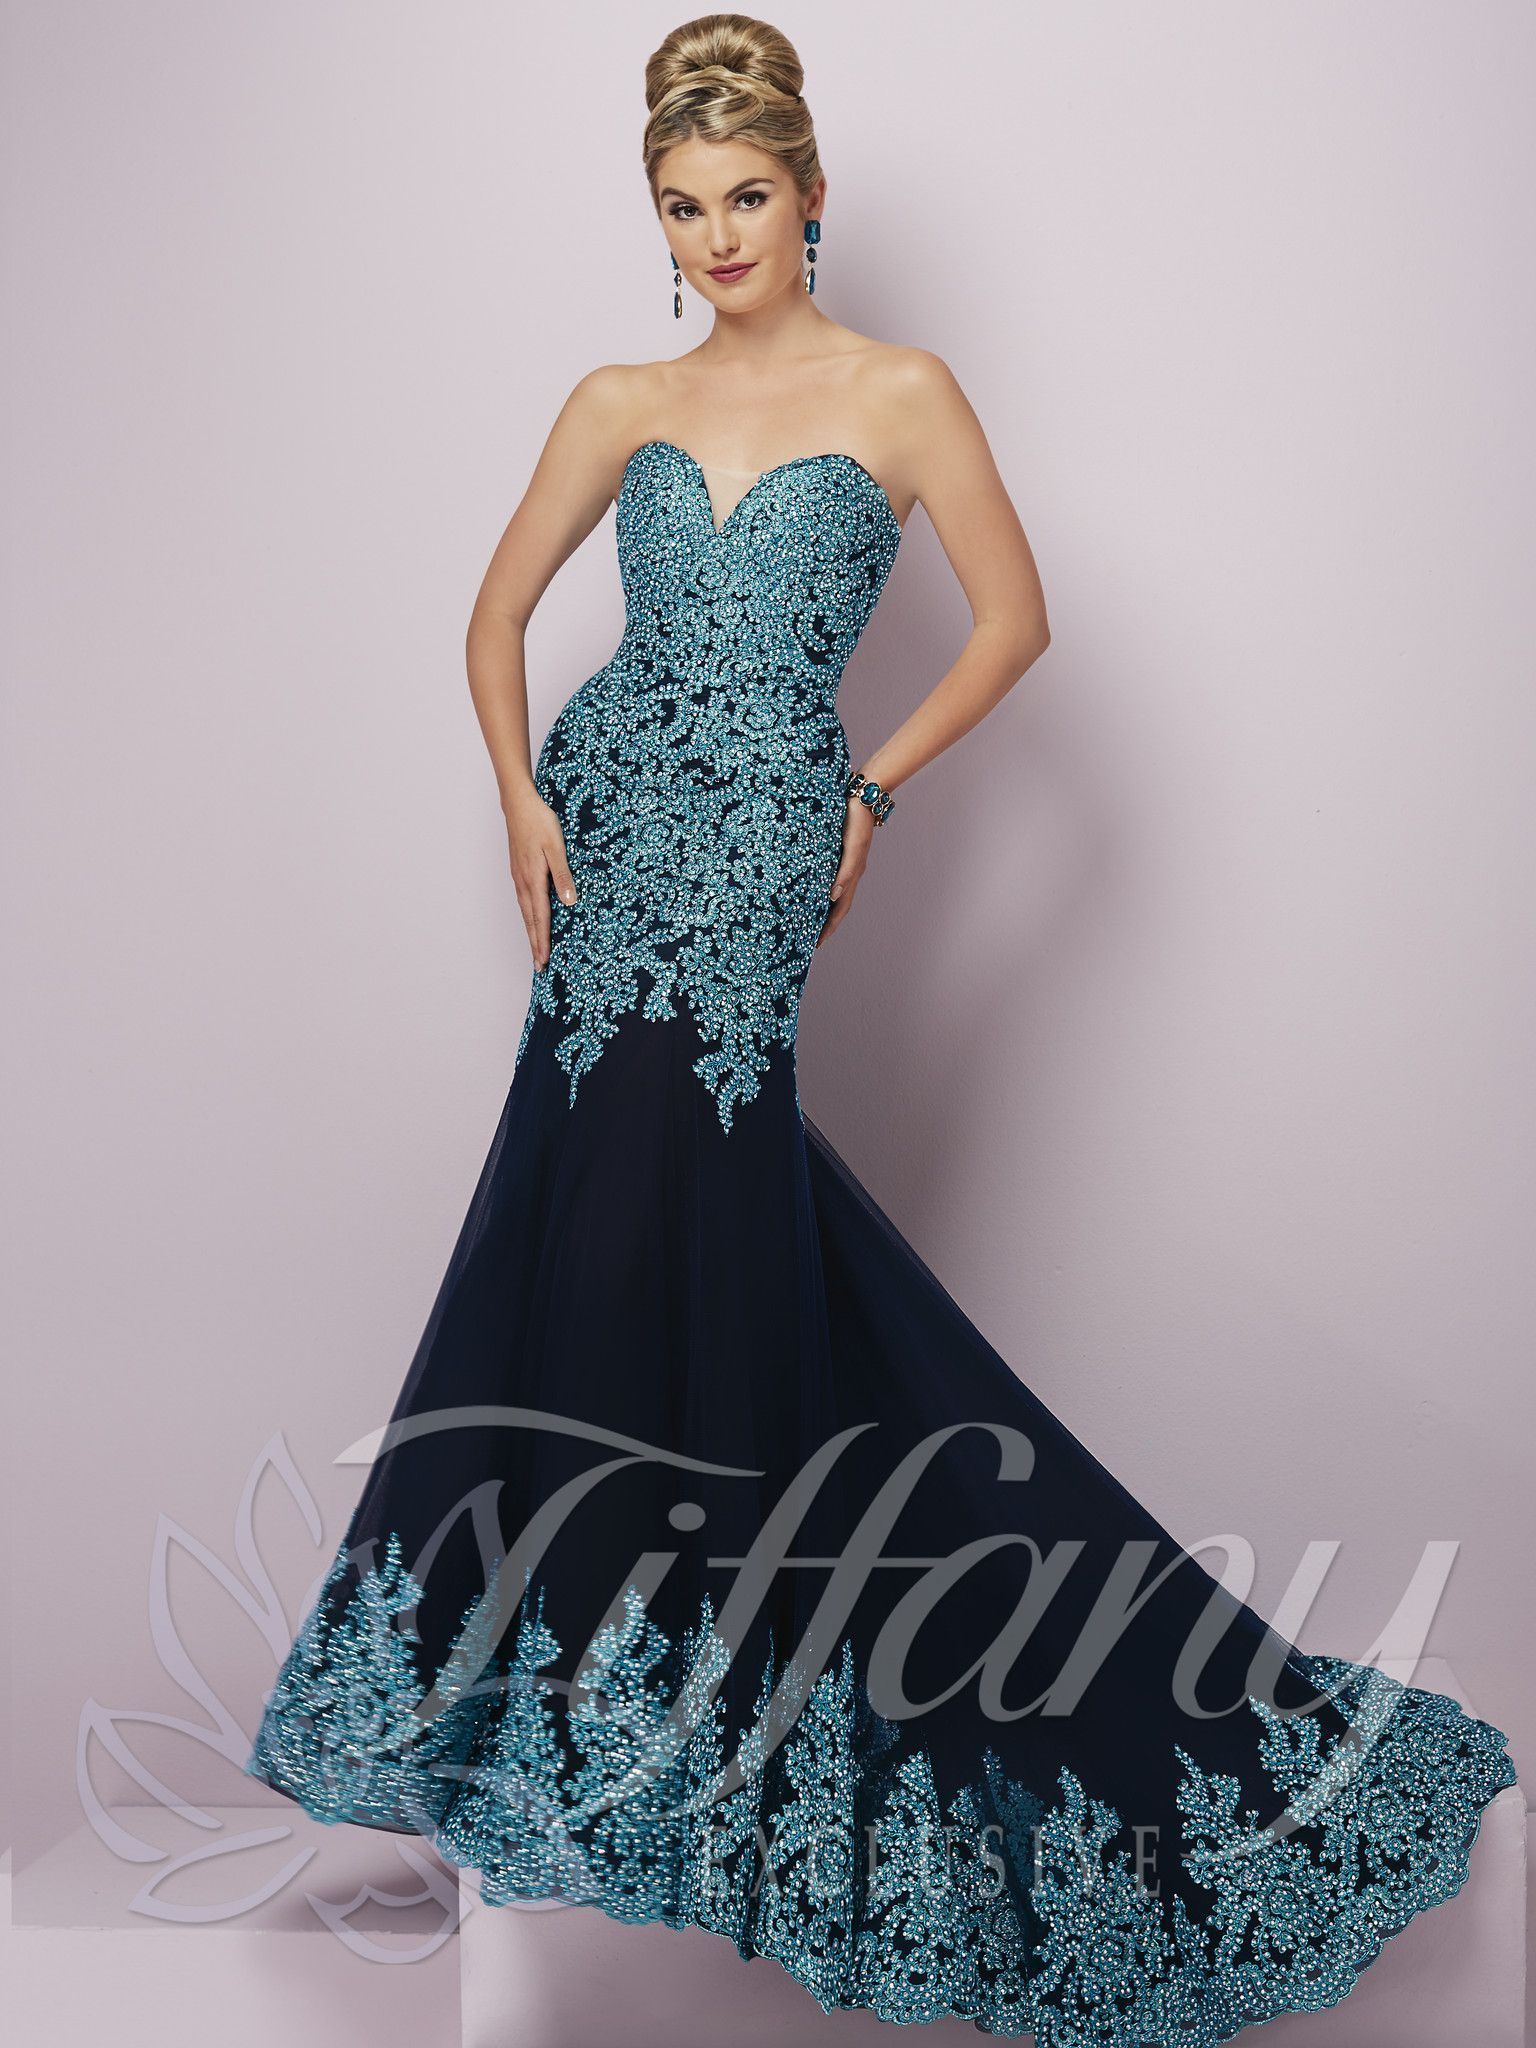 Tiffany exclusives navy turquoise beaded sweetheart prom dress